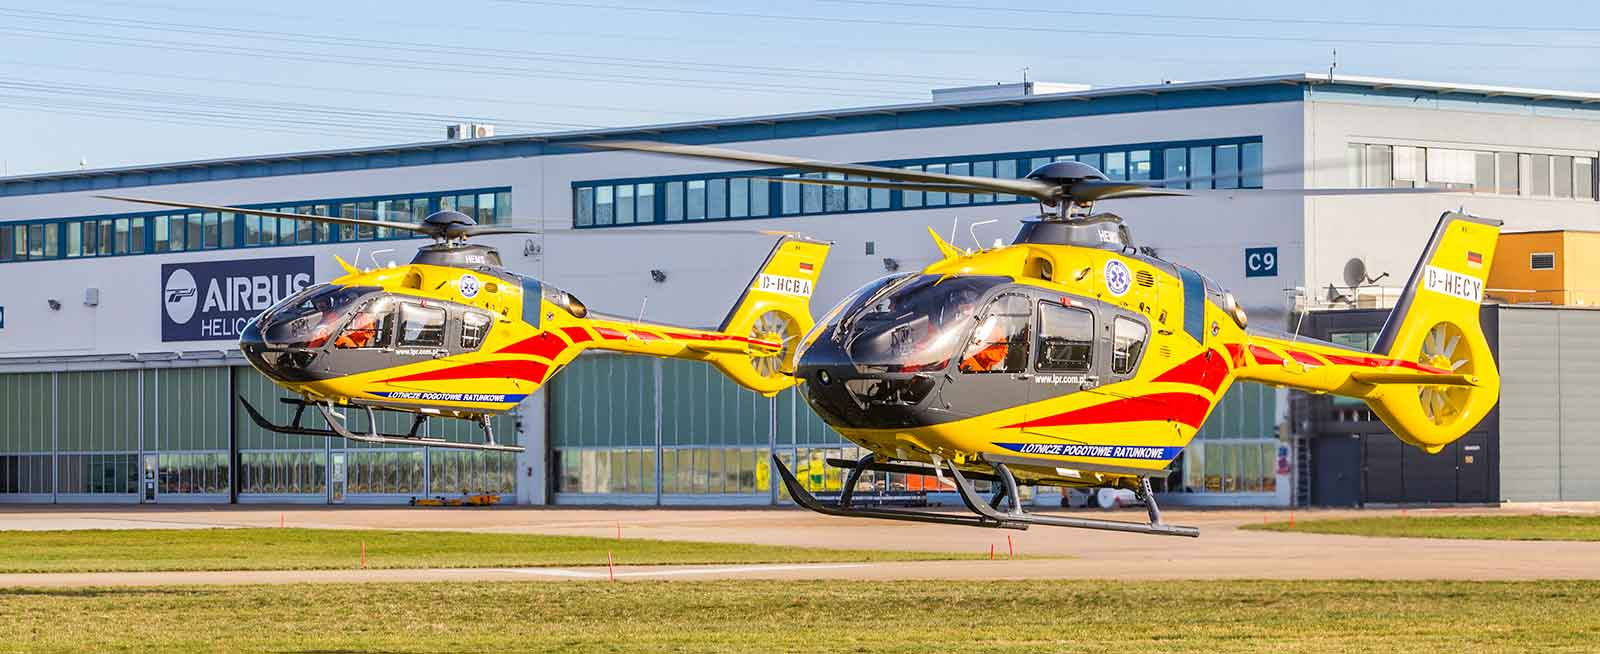 airbus helicopters donauwörth with Airbus Helicopters Deliver Lpr In Poland Four Additional H135 Helicopters on 653380 together with First Picture Nh90 Sea Lion For Germany also Tmb 2016 Airbus Helicopter Deutschland In Donauworth together with H145 likewise 428284.